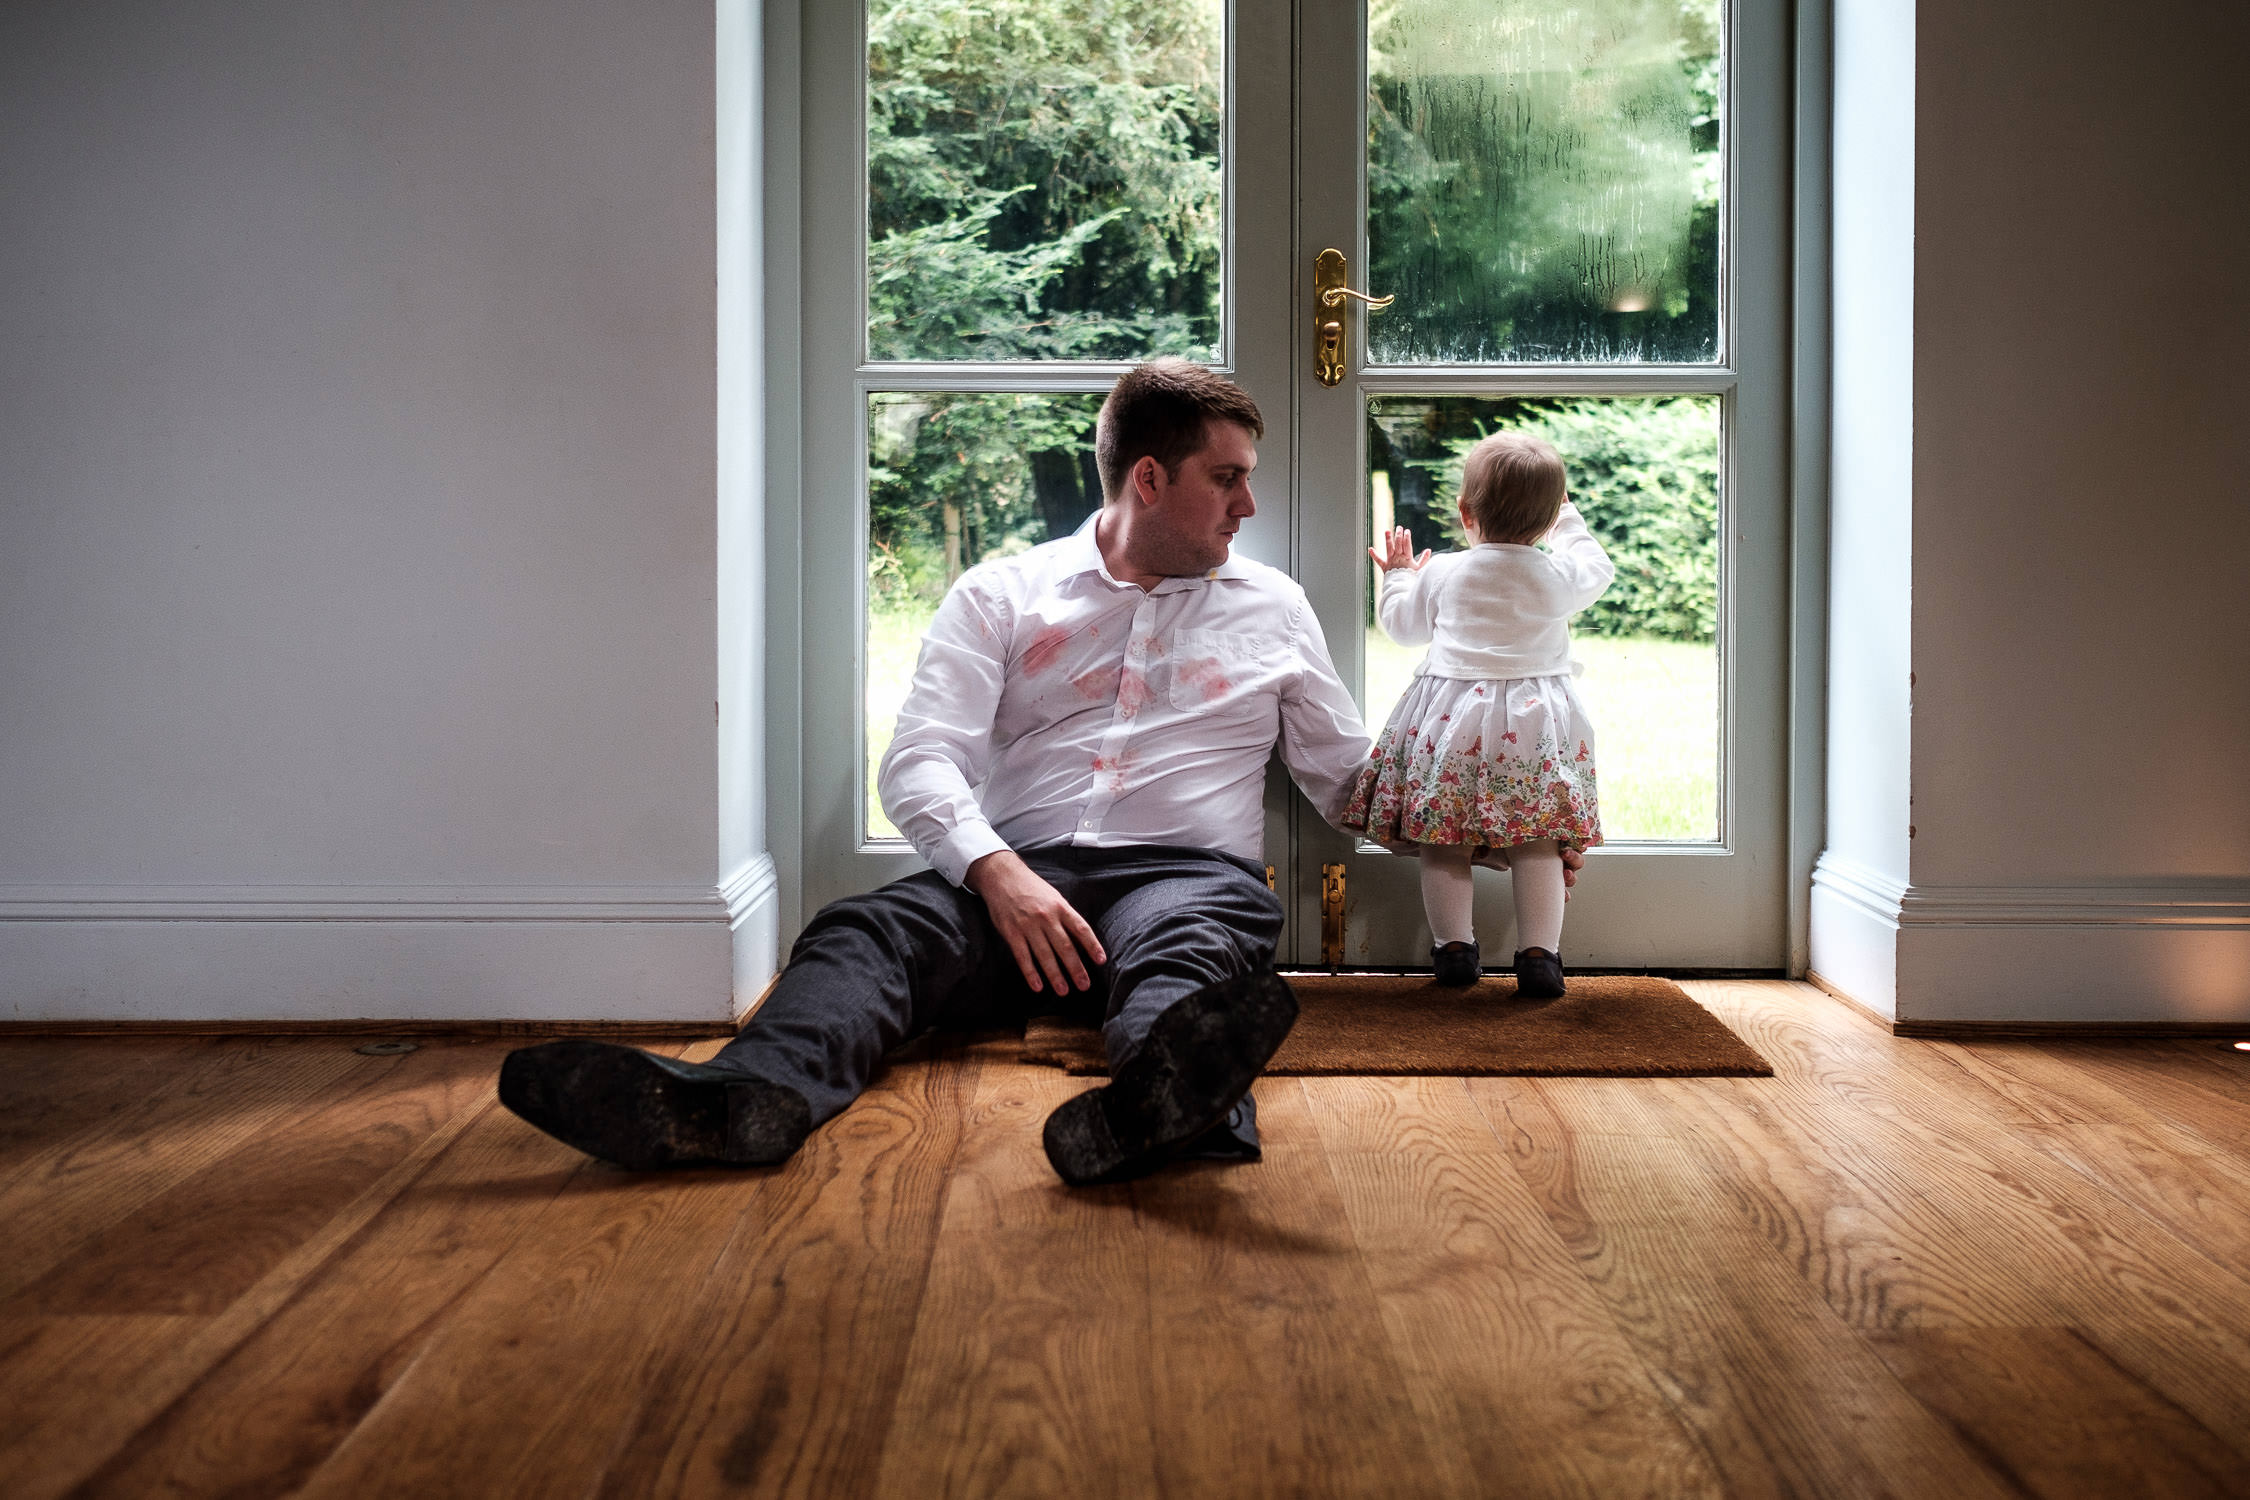 man with messy shirt sitting on floor with girl